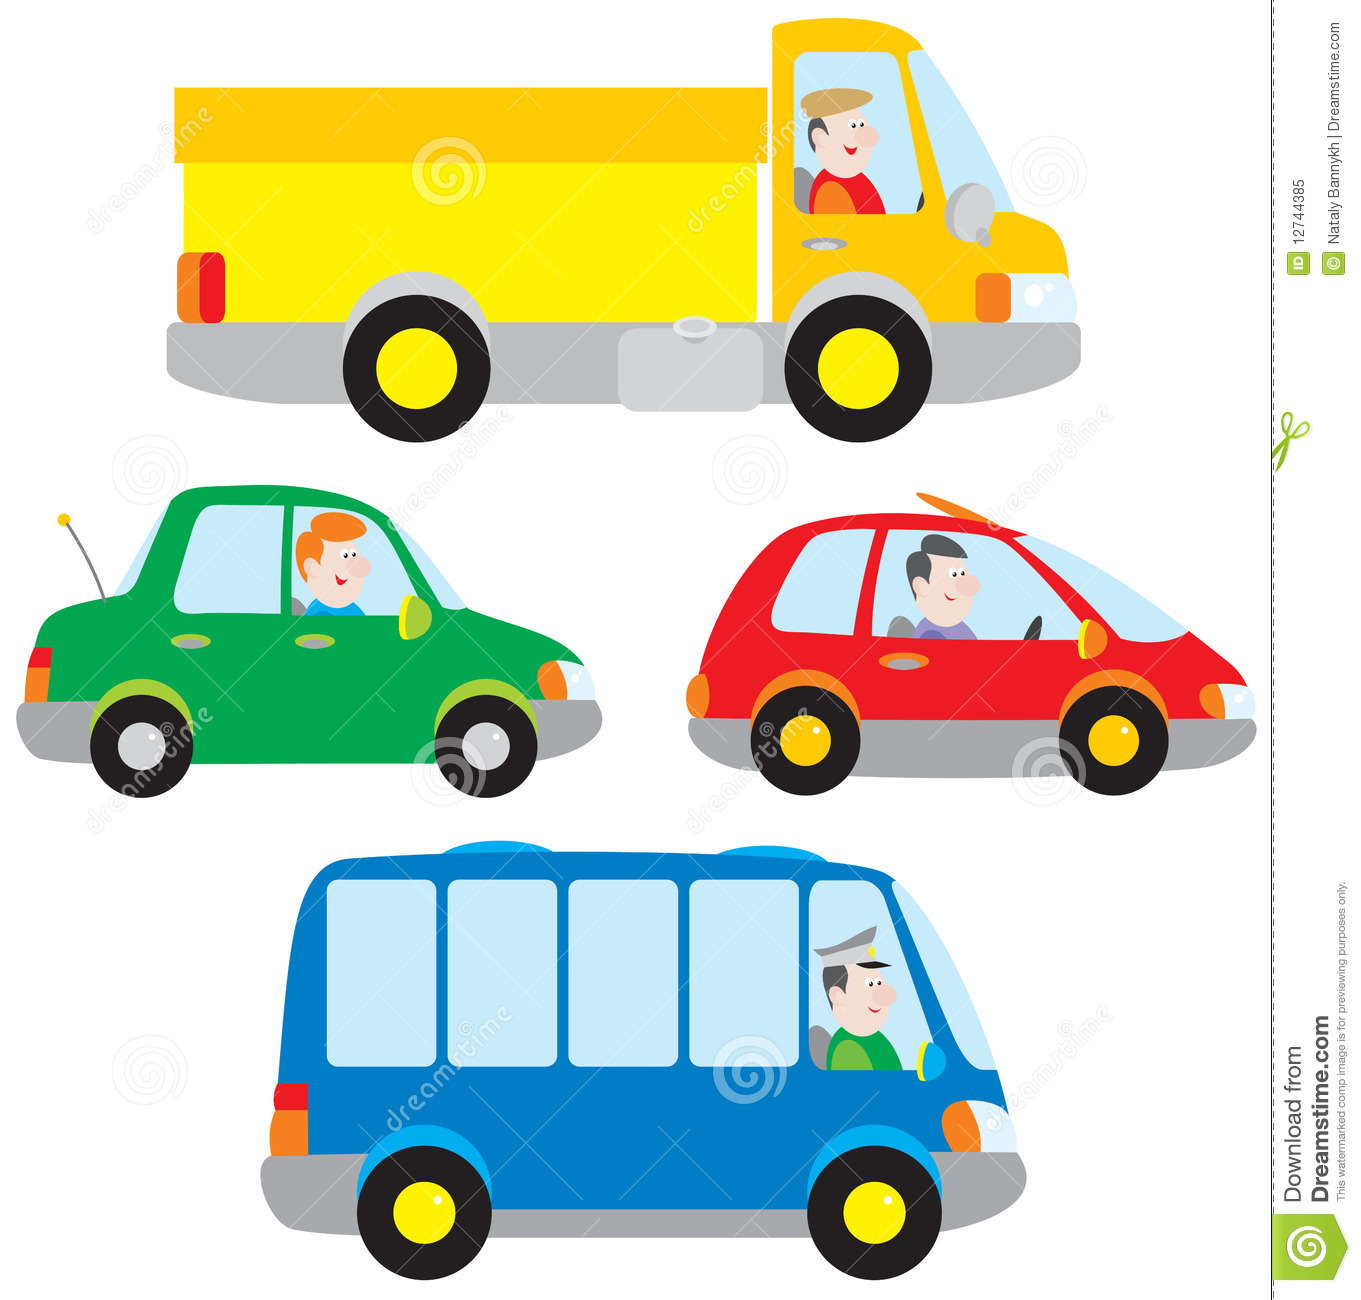 1361x1300 Free Clip Art Cars And Trucks, Capitol Building Clip Art Also